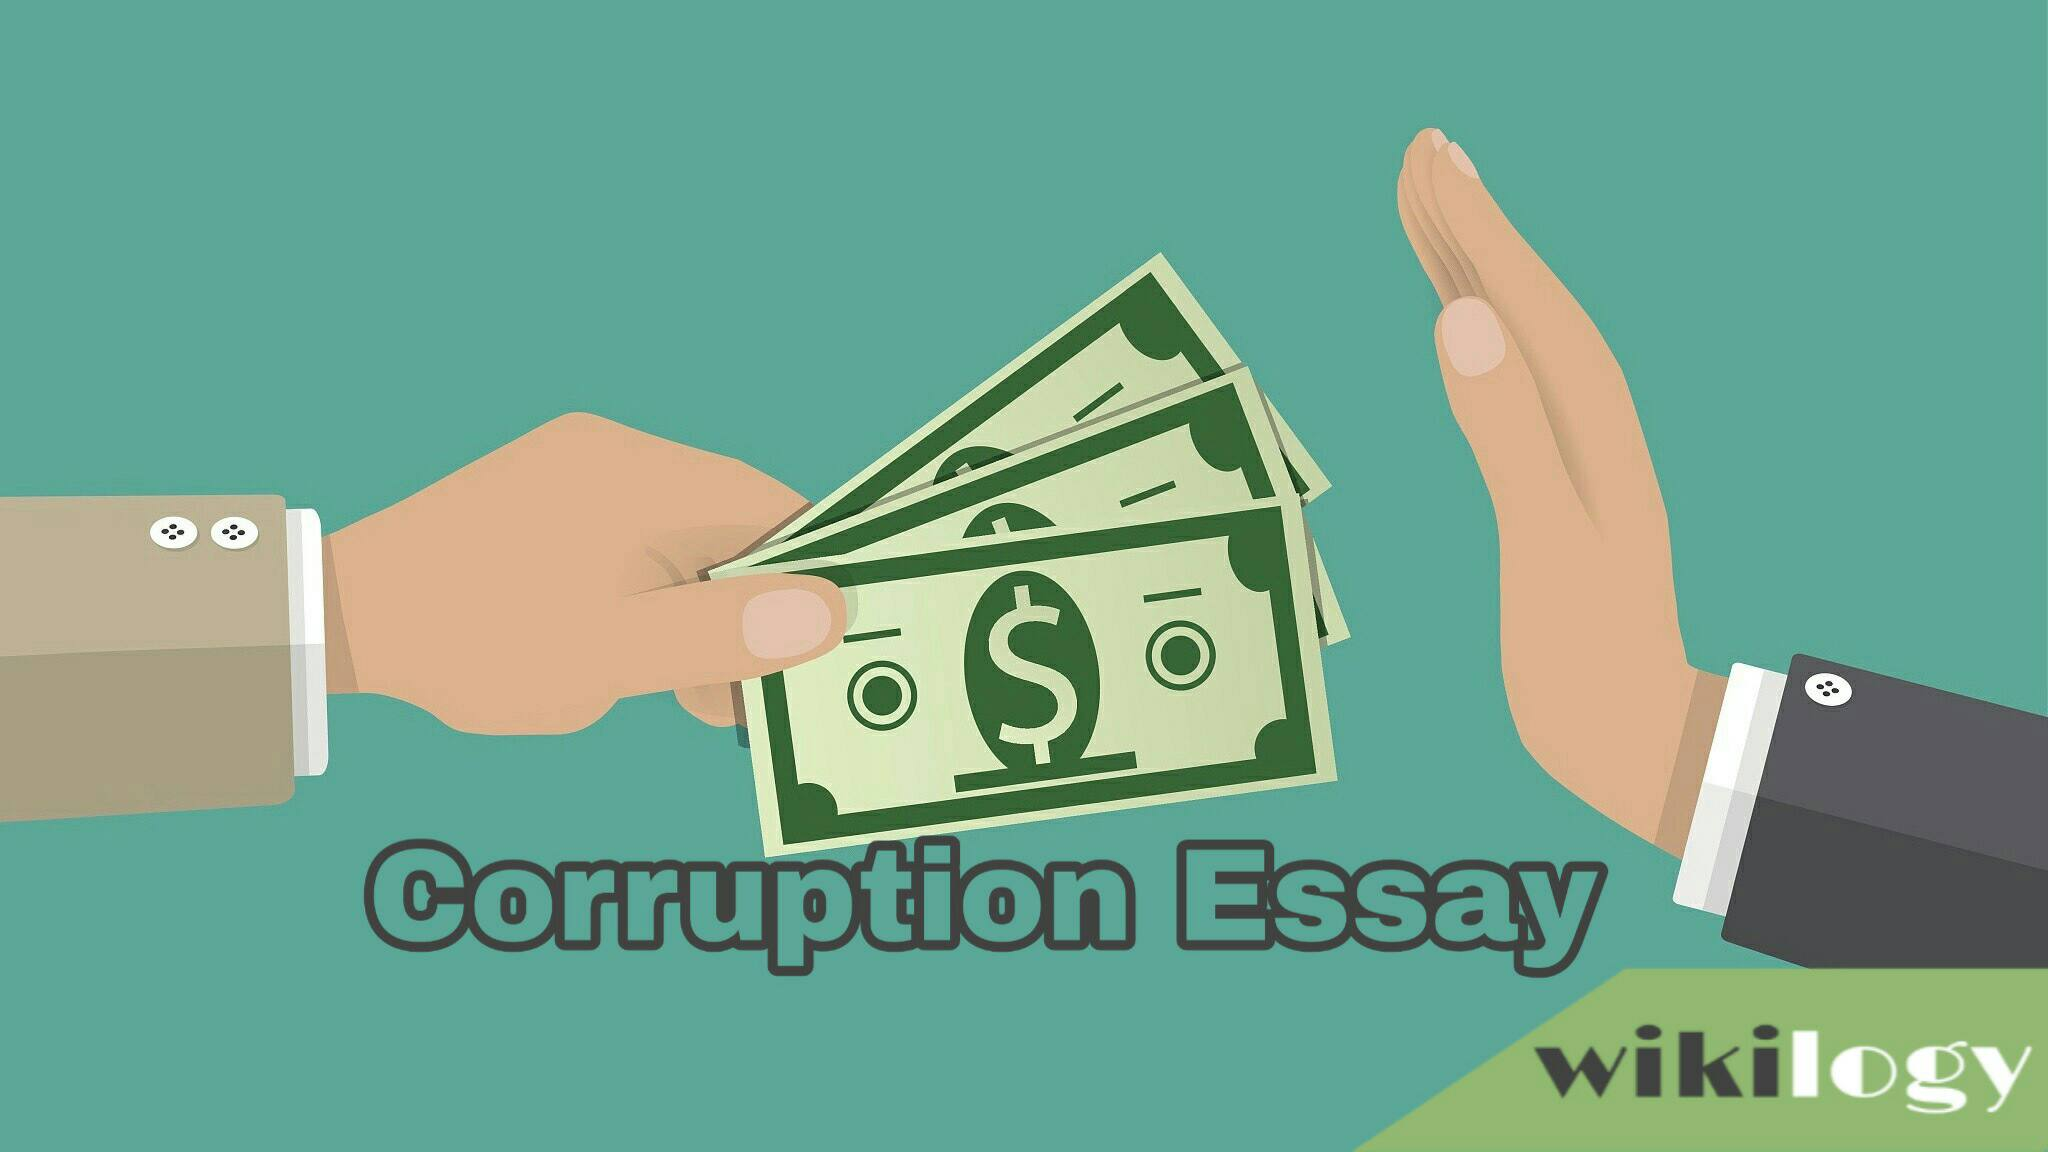 Essay on Corruption/ Corruption is a Curse Composition